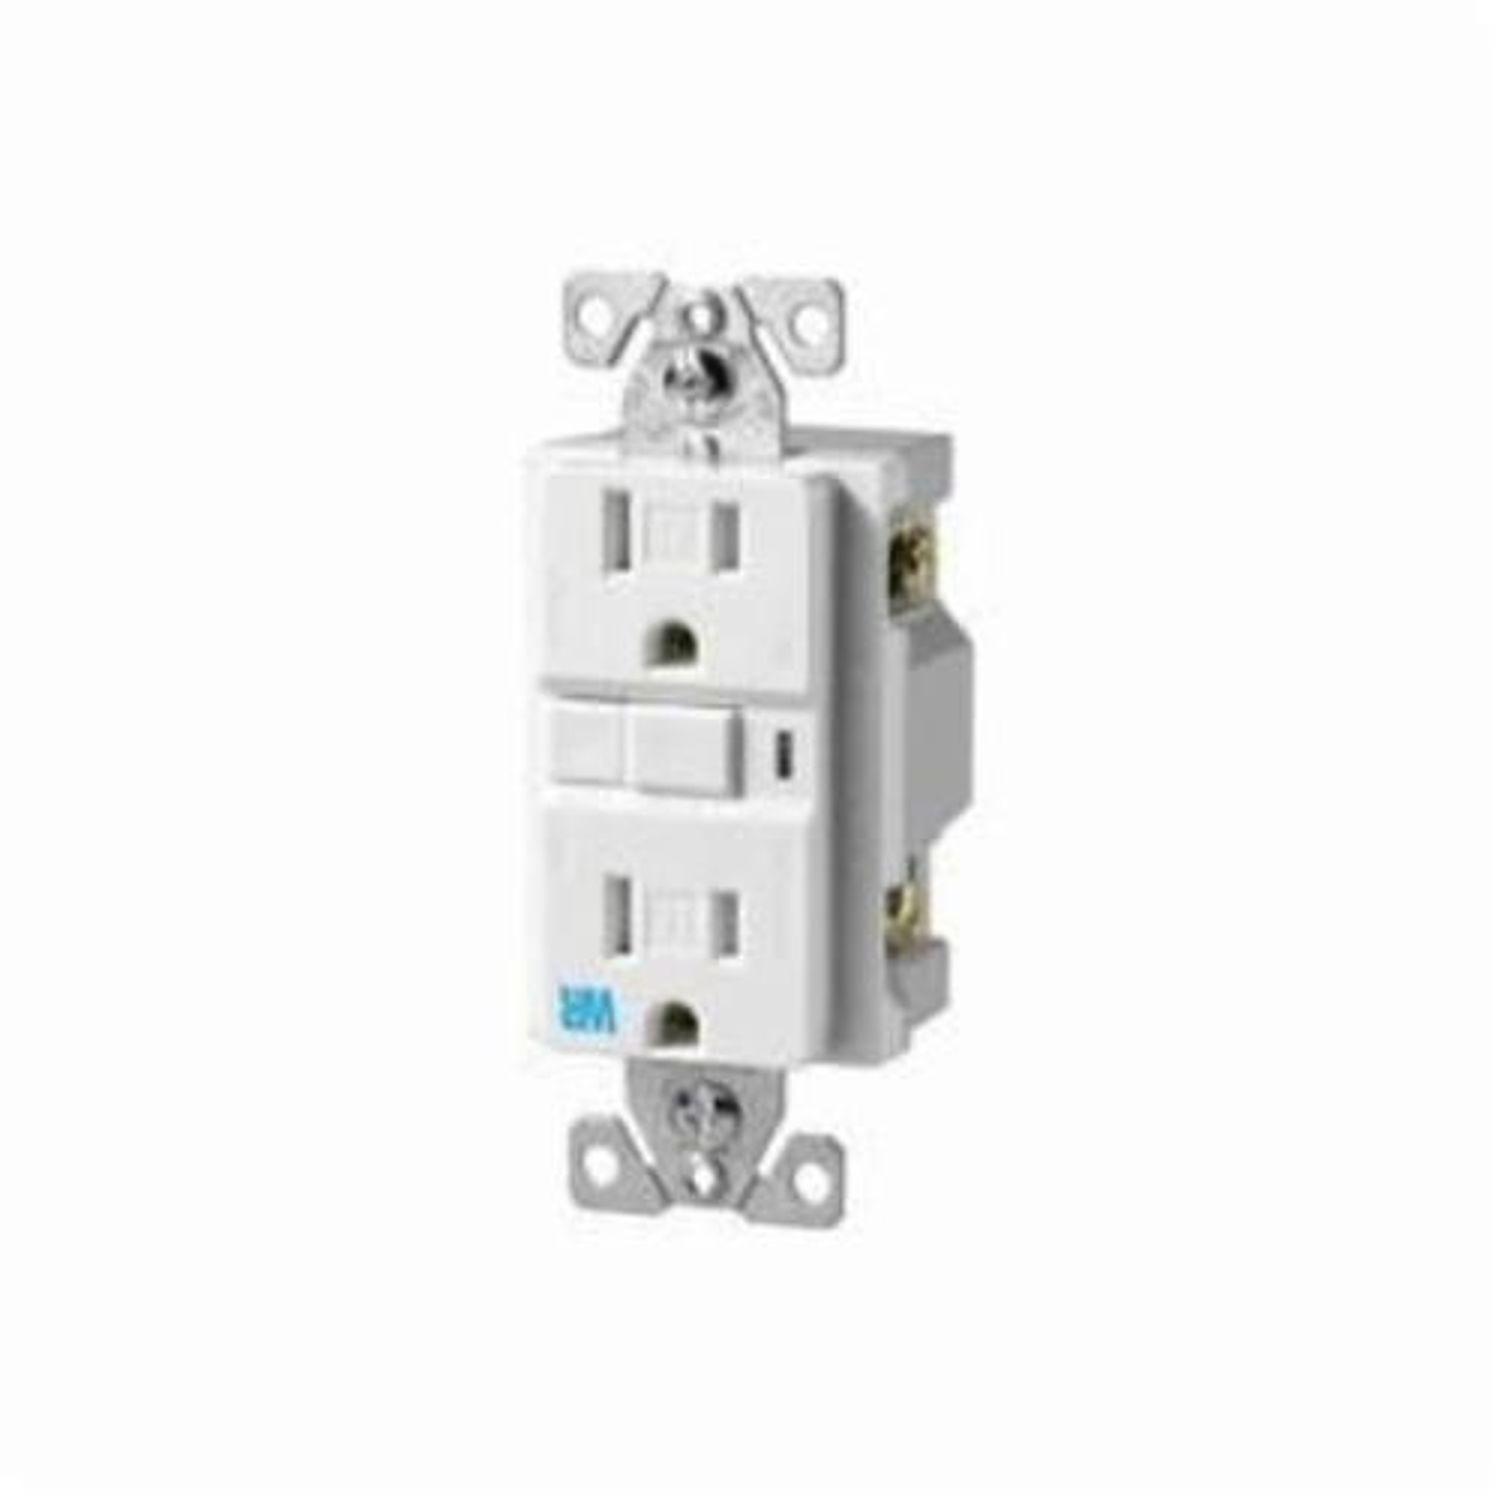 Cooper Wiring Twrvgf Tamper And Weather Resistant Duplex Gfci Receptacles Receptacle 125 Vac 15 A 2 Poles 3 Wires Light Almond